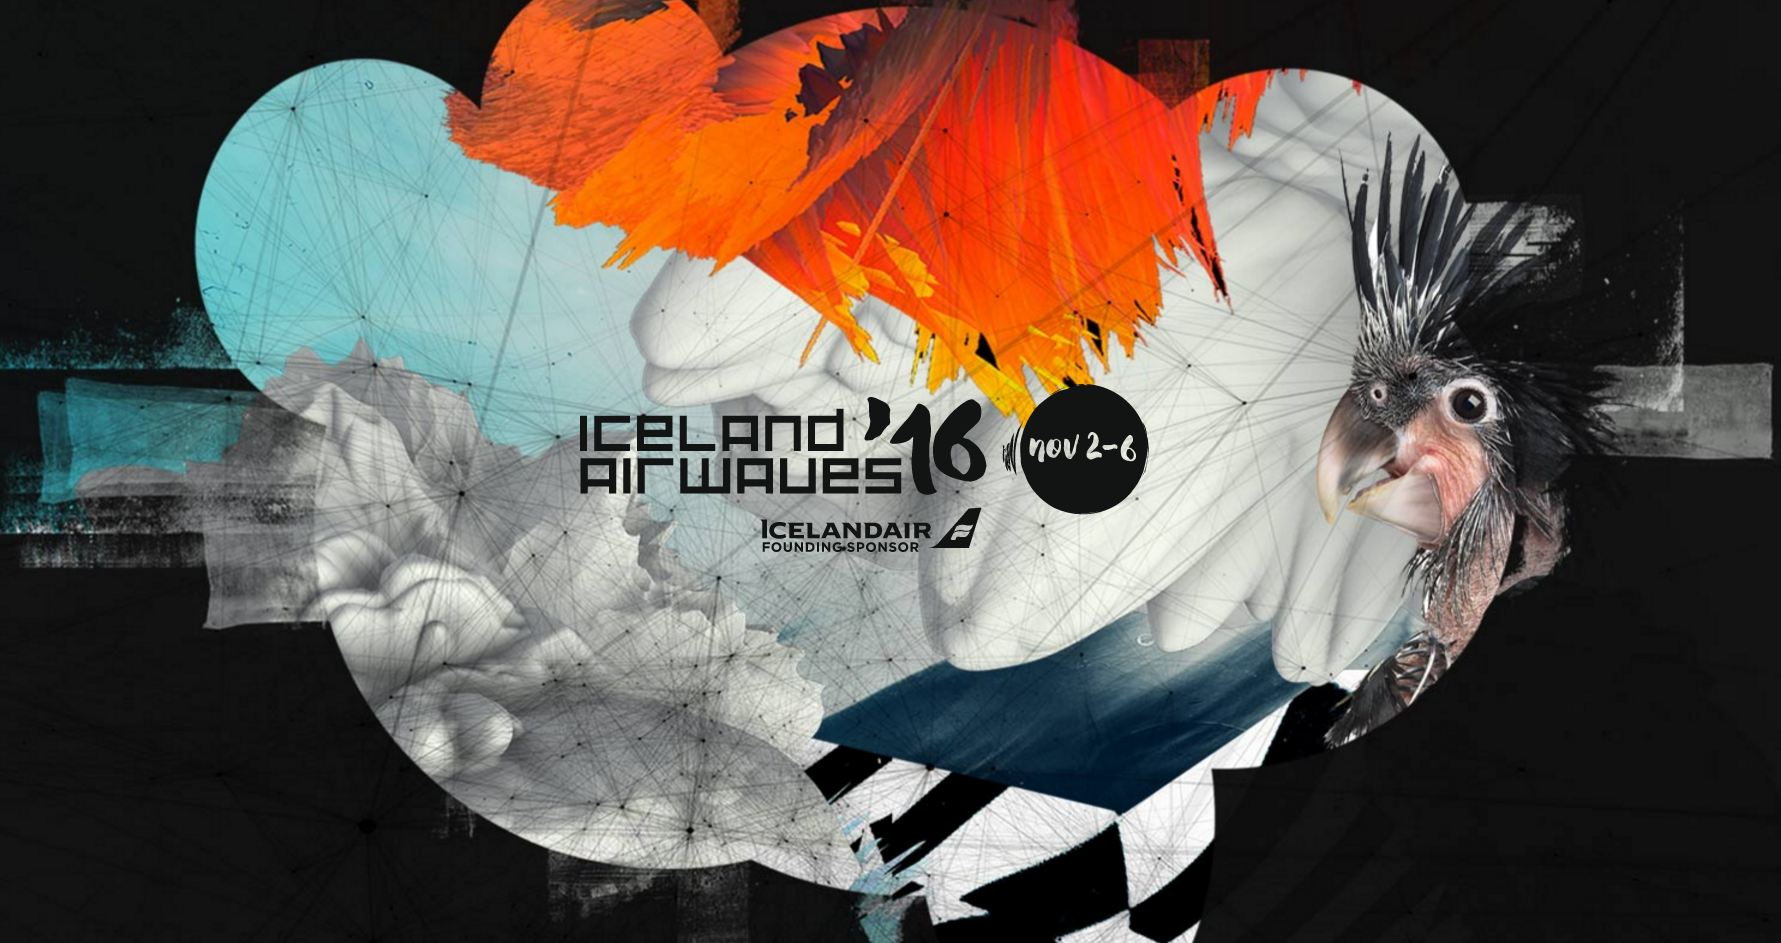 Iceland Airwaves reveals its final line-up for 2016!